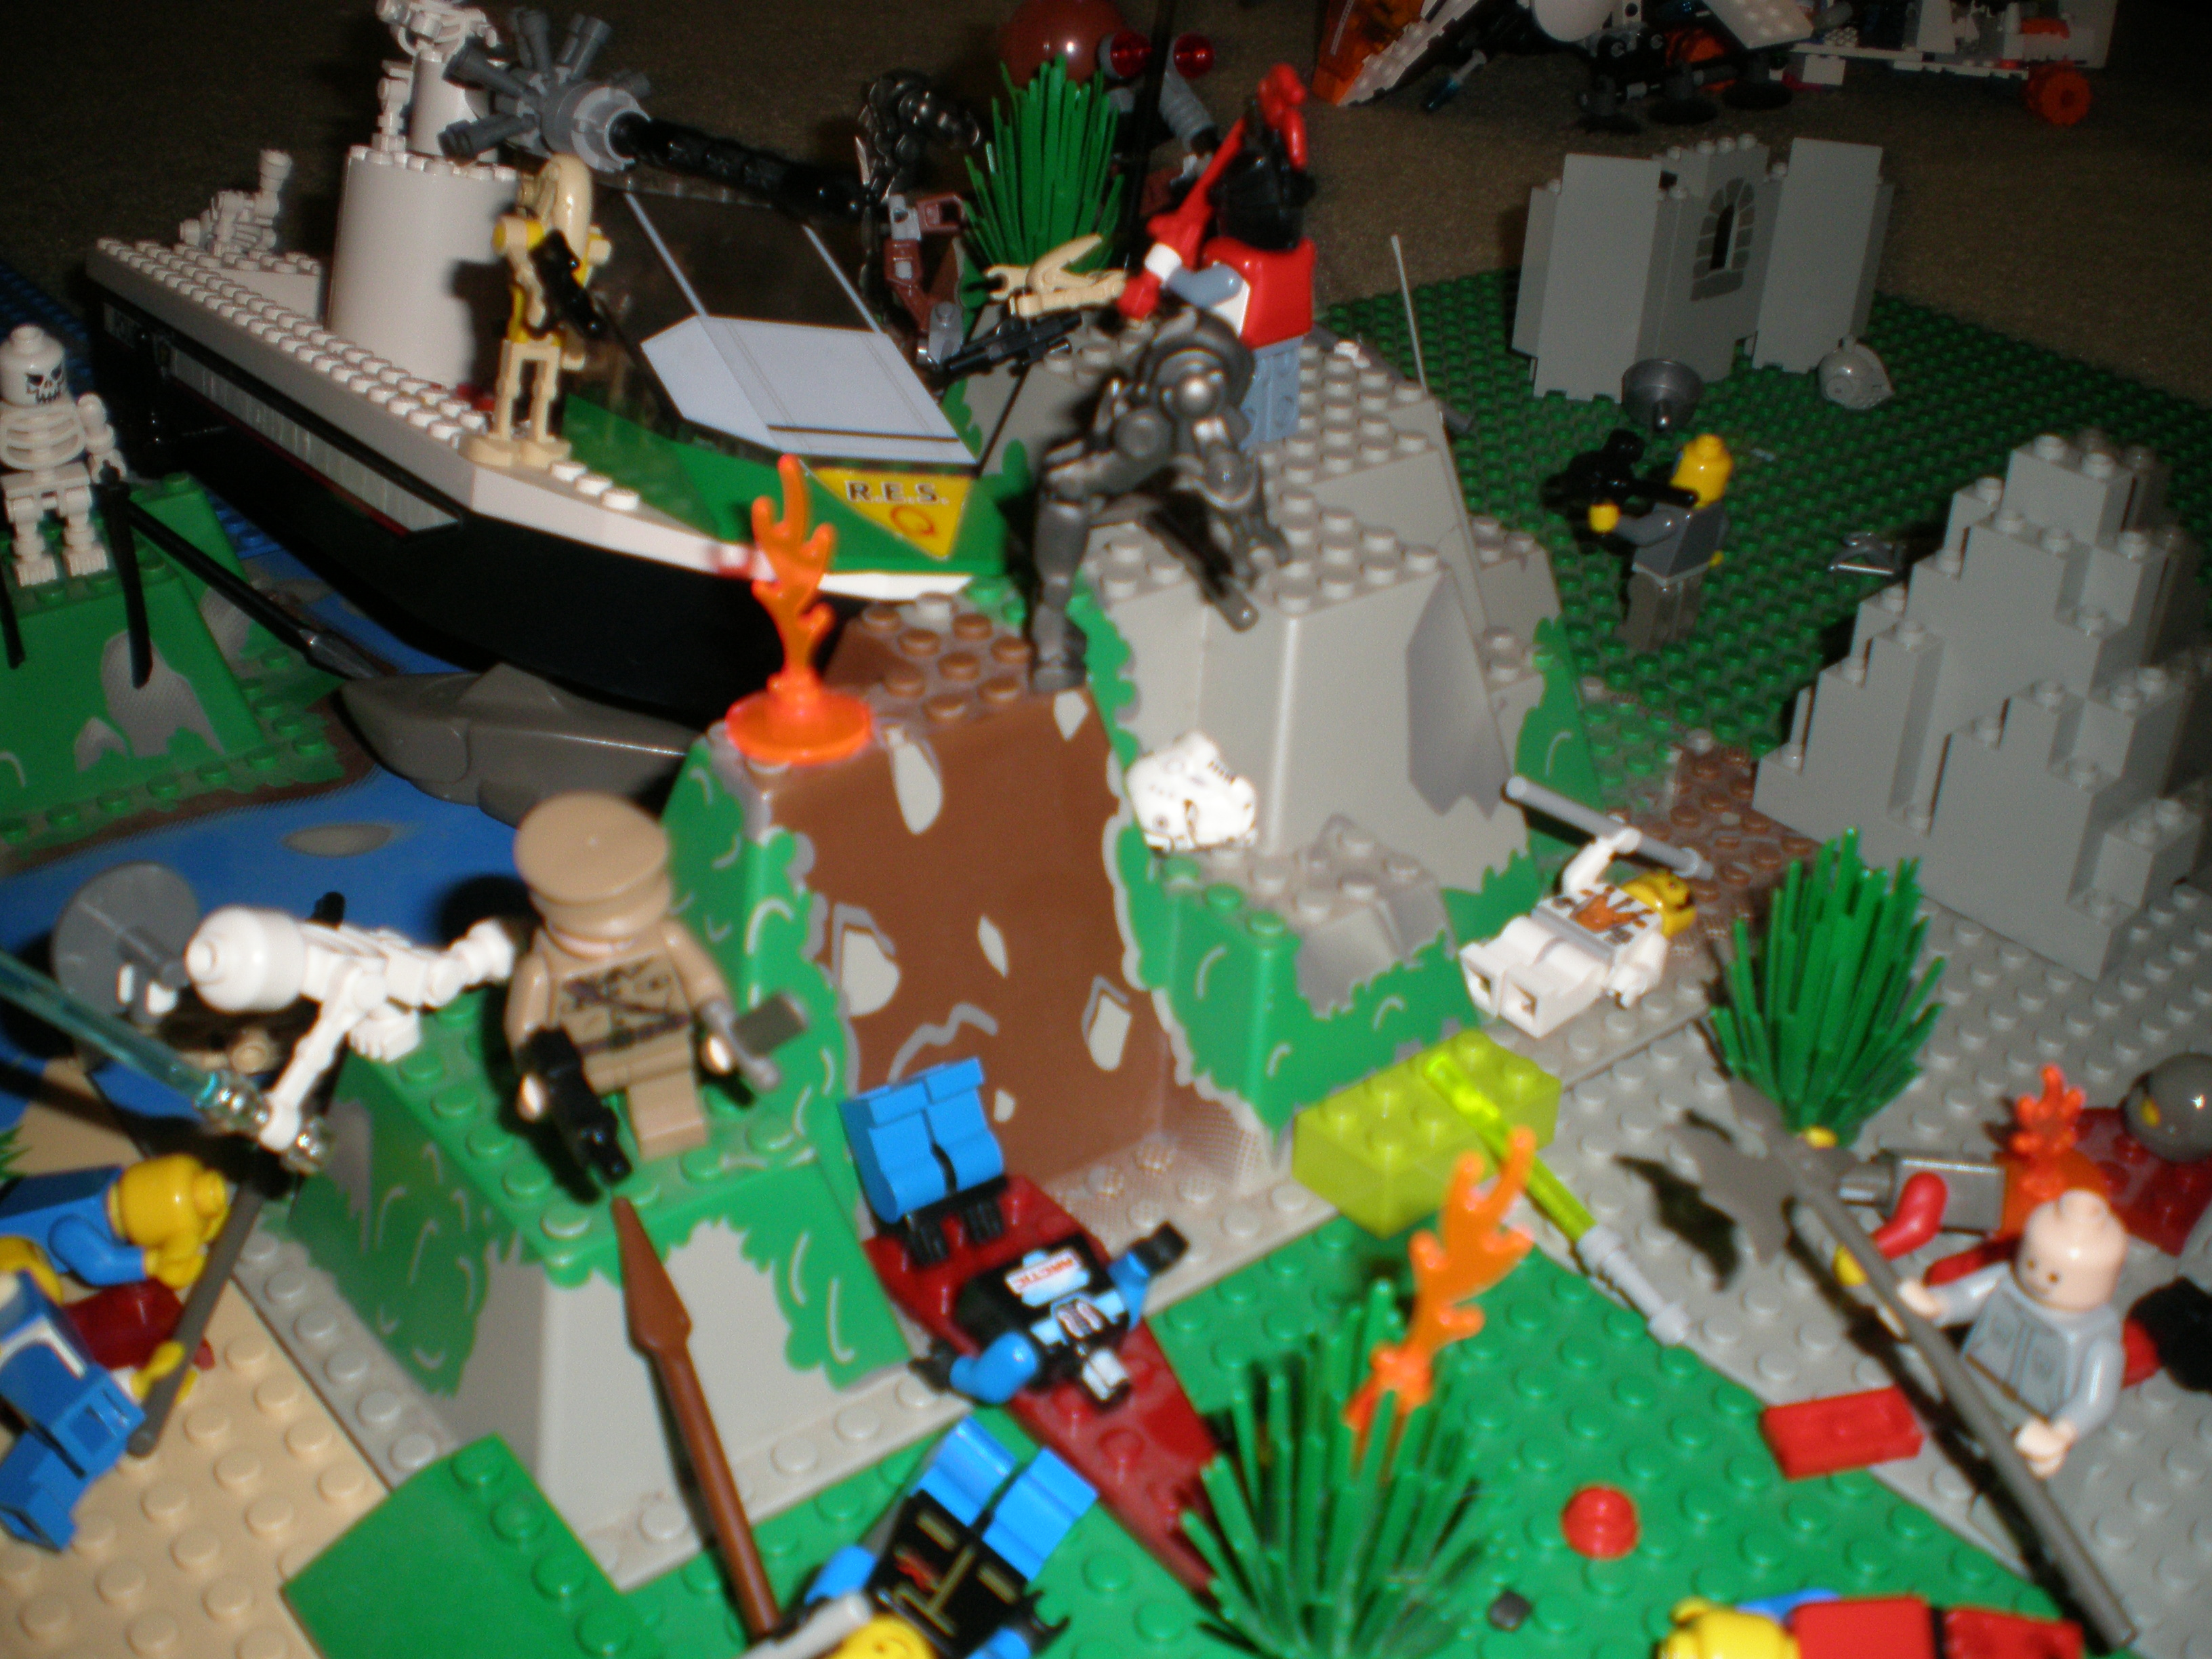 armagendon_lego_battle_012.jpg